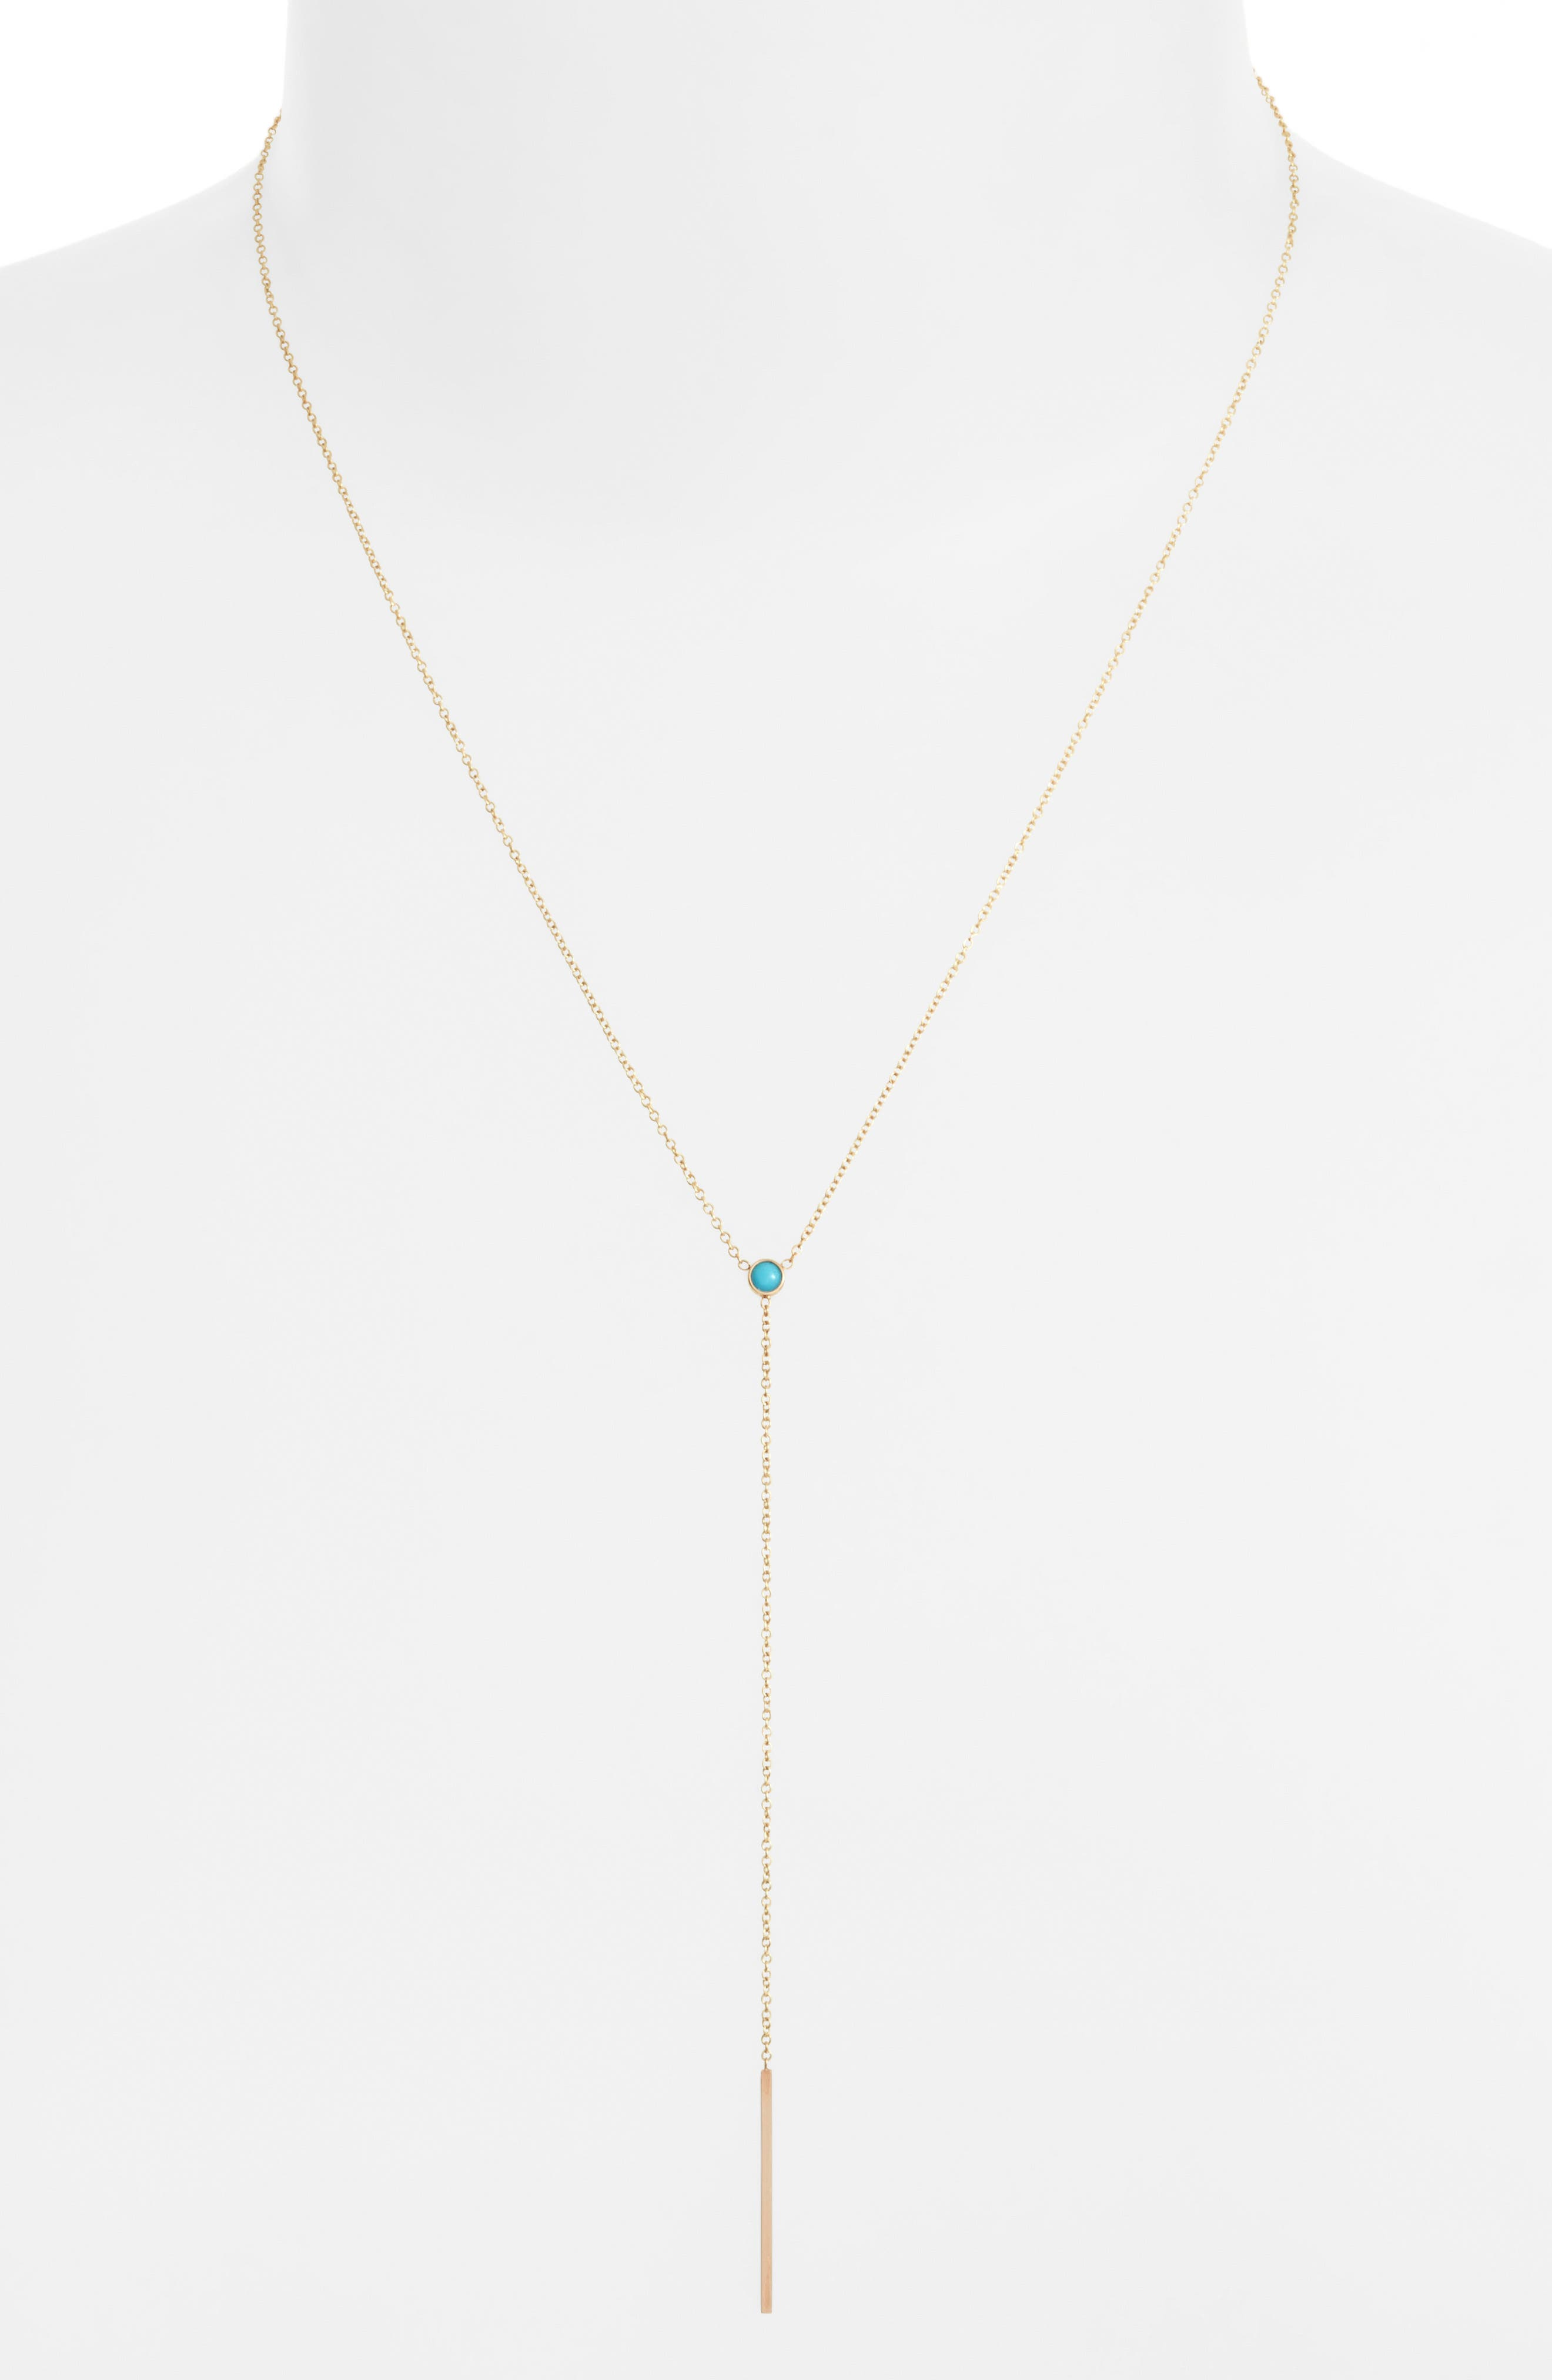 ZOË CHICCO Turquoise Bezel Y-Necklace